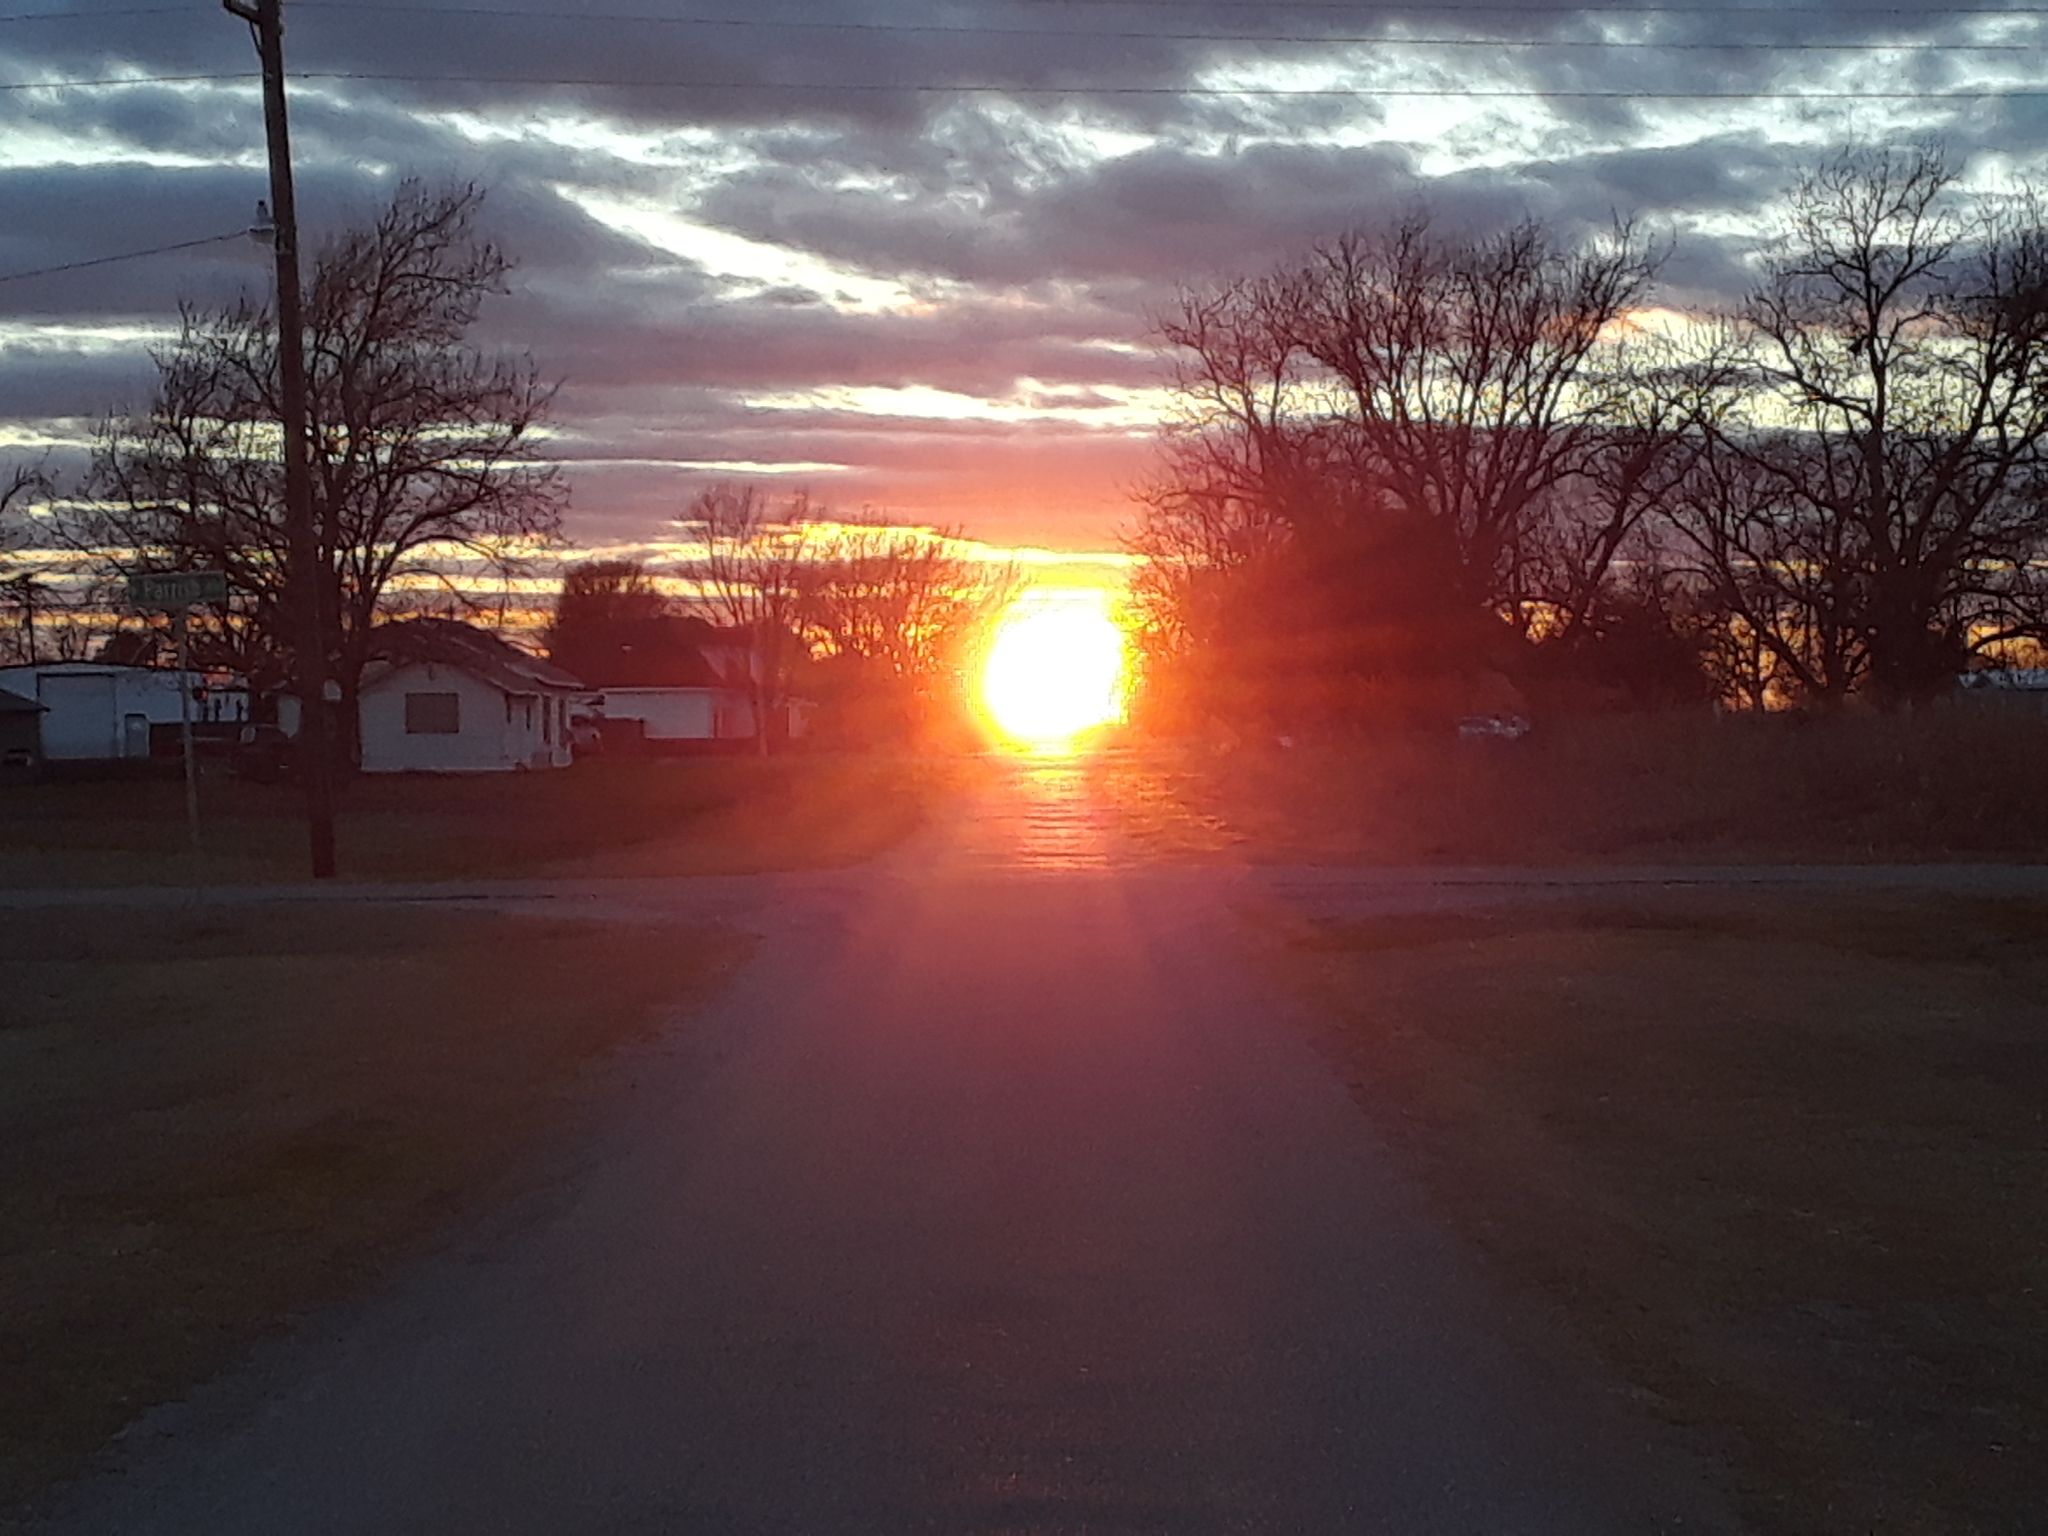 Awesome sunset at the end of the street